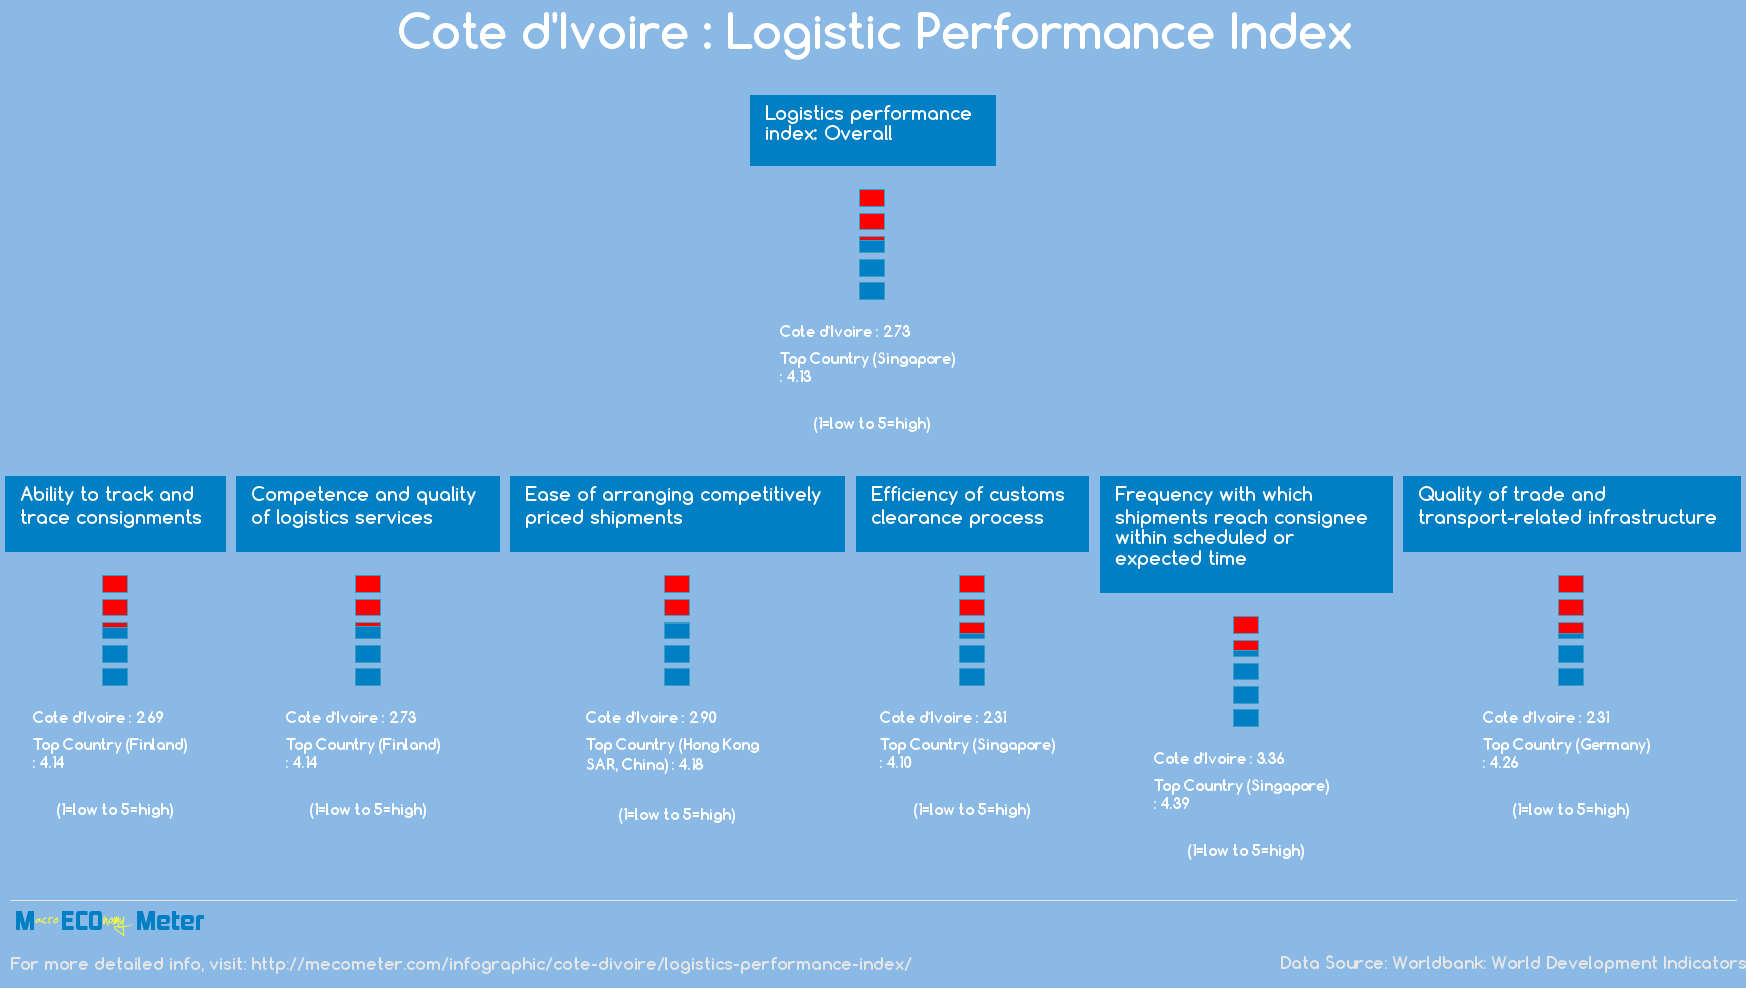 Cote d'Ivoire : Logistic Performance Index